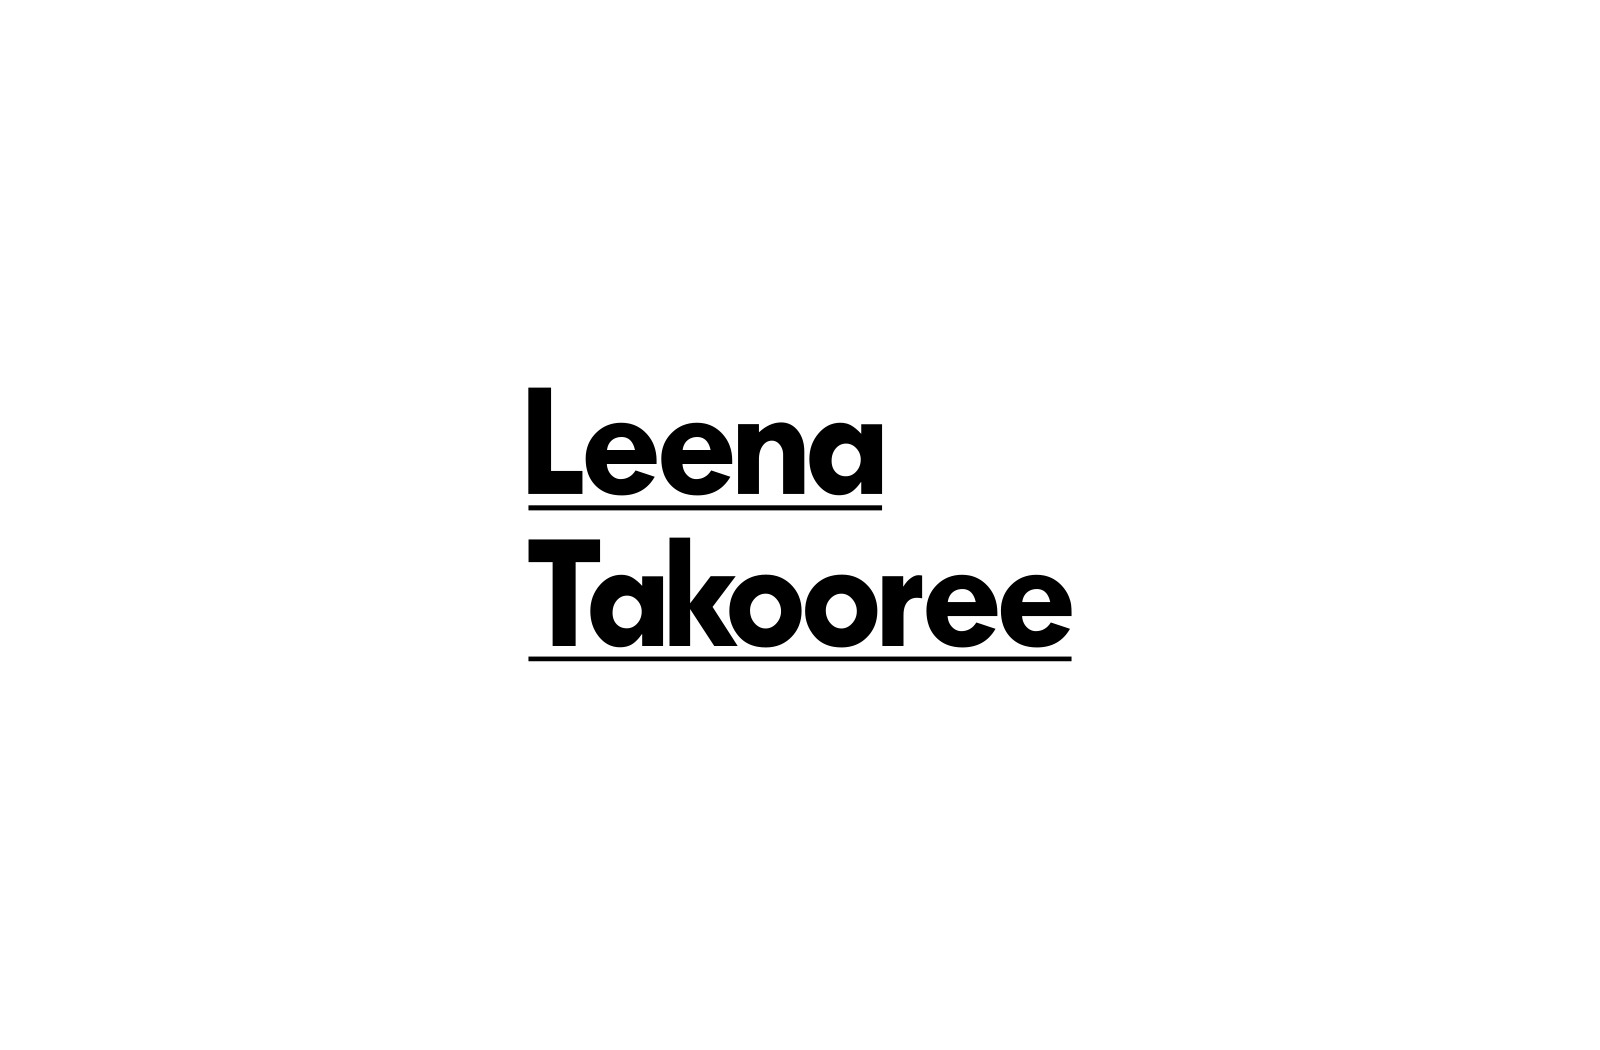 Leena Takooree — Tristan Palmer — Graphic Design